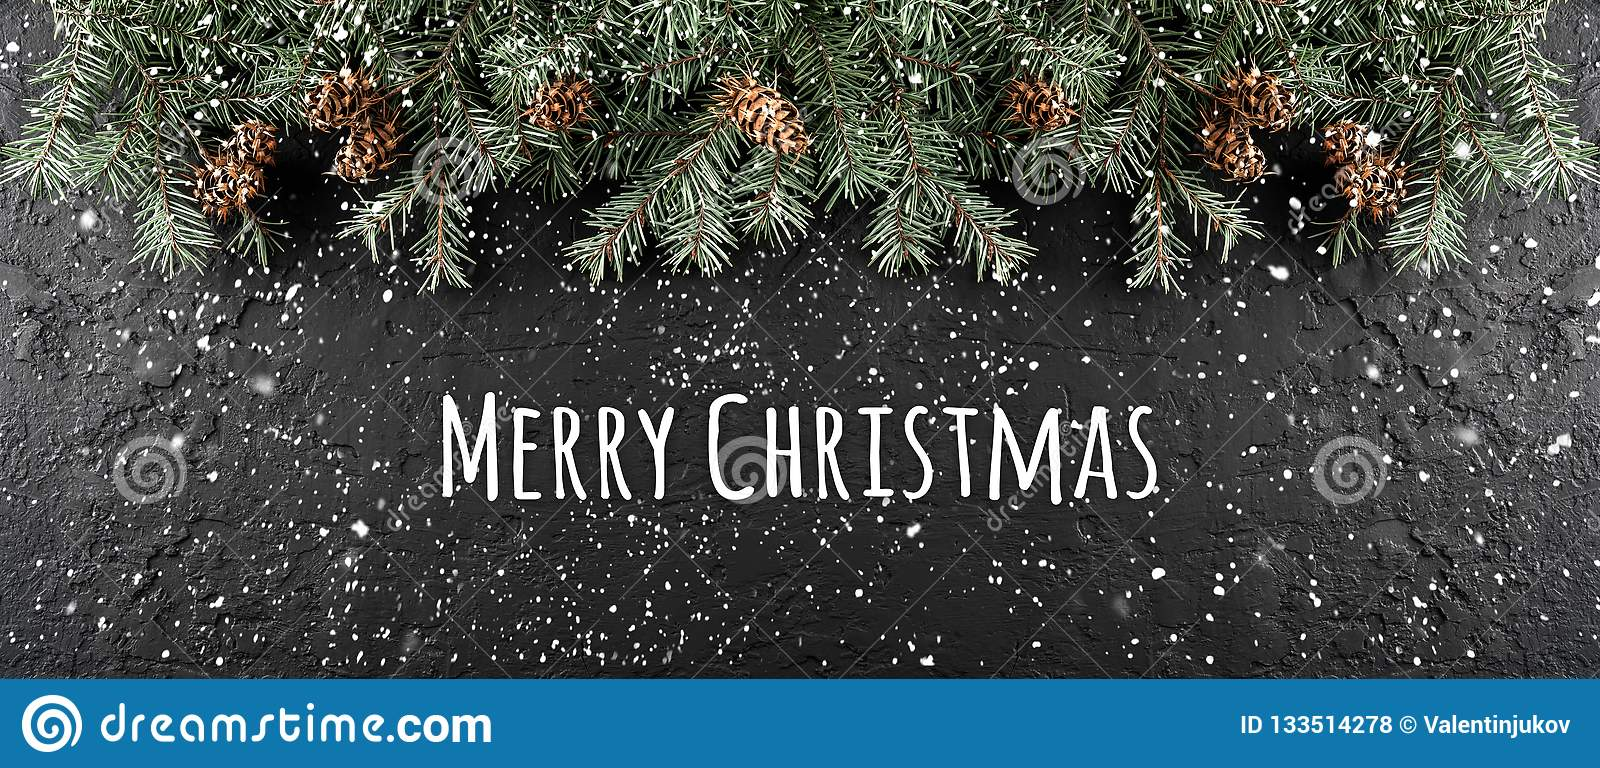 Merry Christmas Typographical on dark holiday background with frame of Fir branches, pine cones